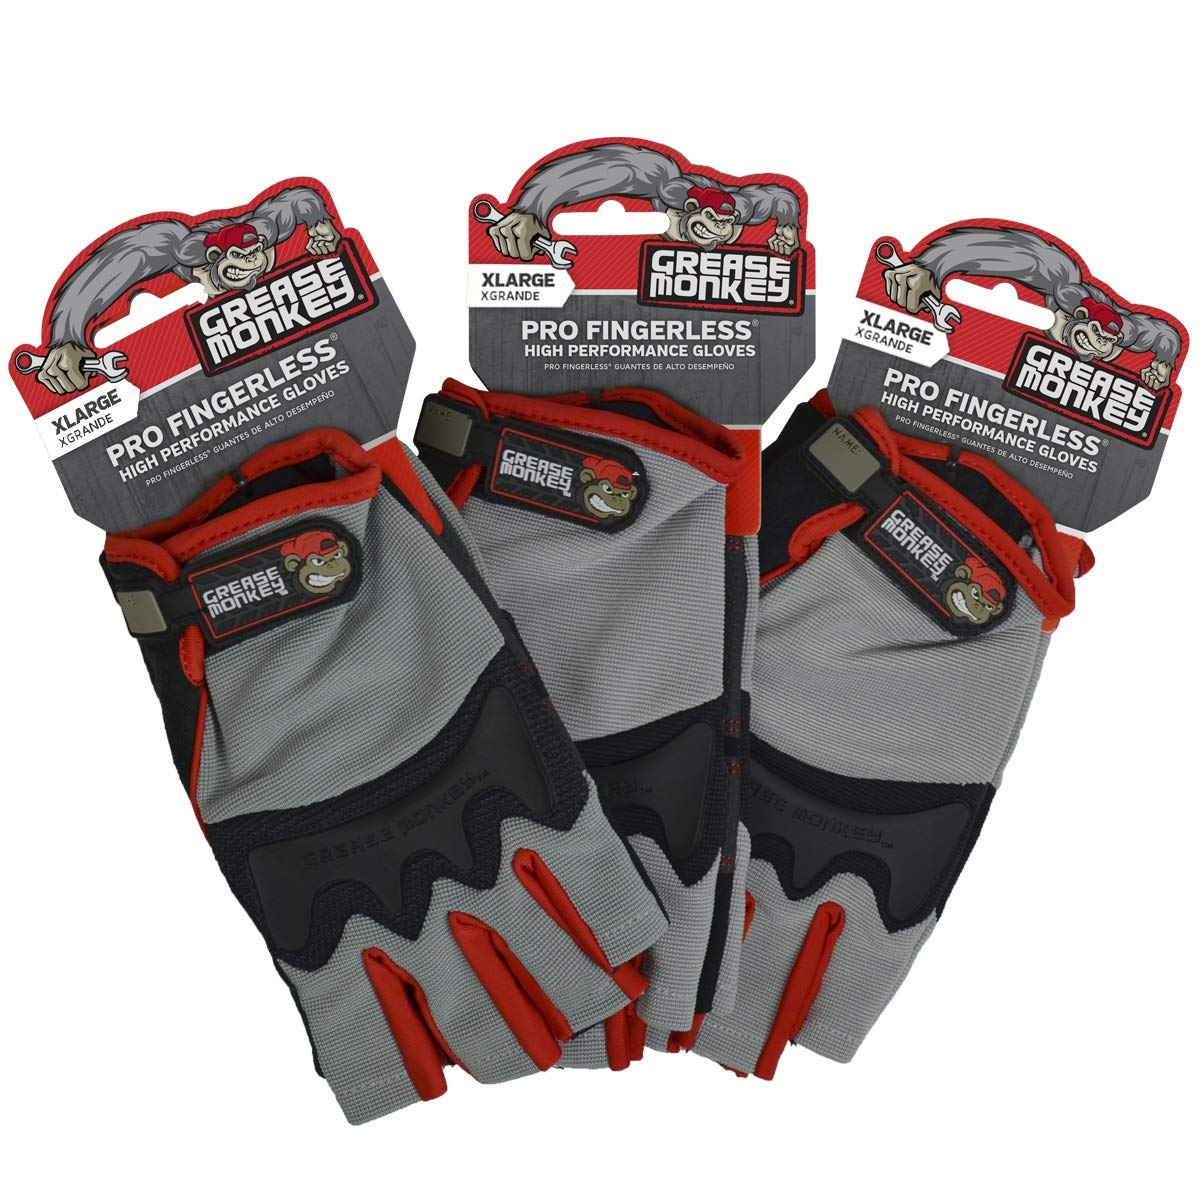 Grease Monkey Pro Fingerless all purpose work gloves and workout gloves, 3 pack, X-Large.